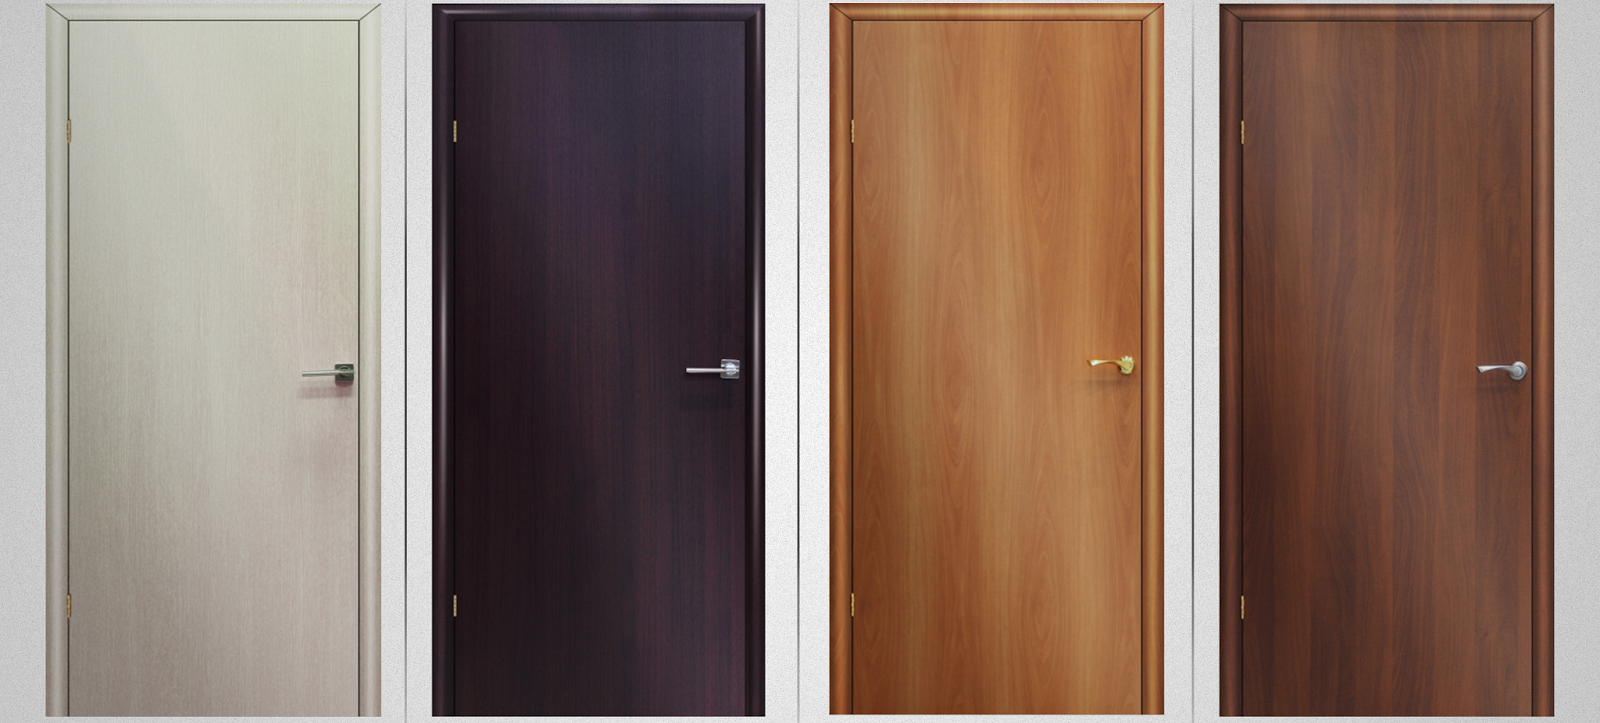 Laminate Interior Doors Laminate Eco Intradoor Interior